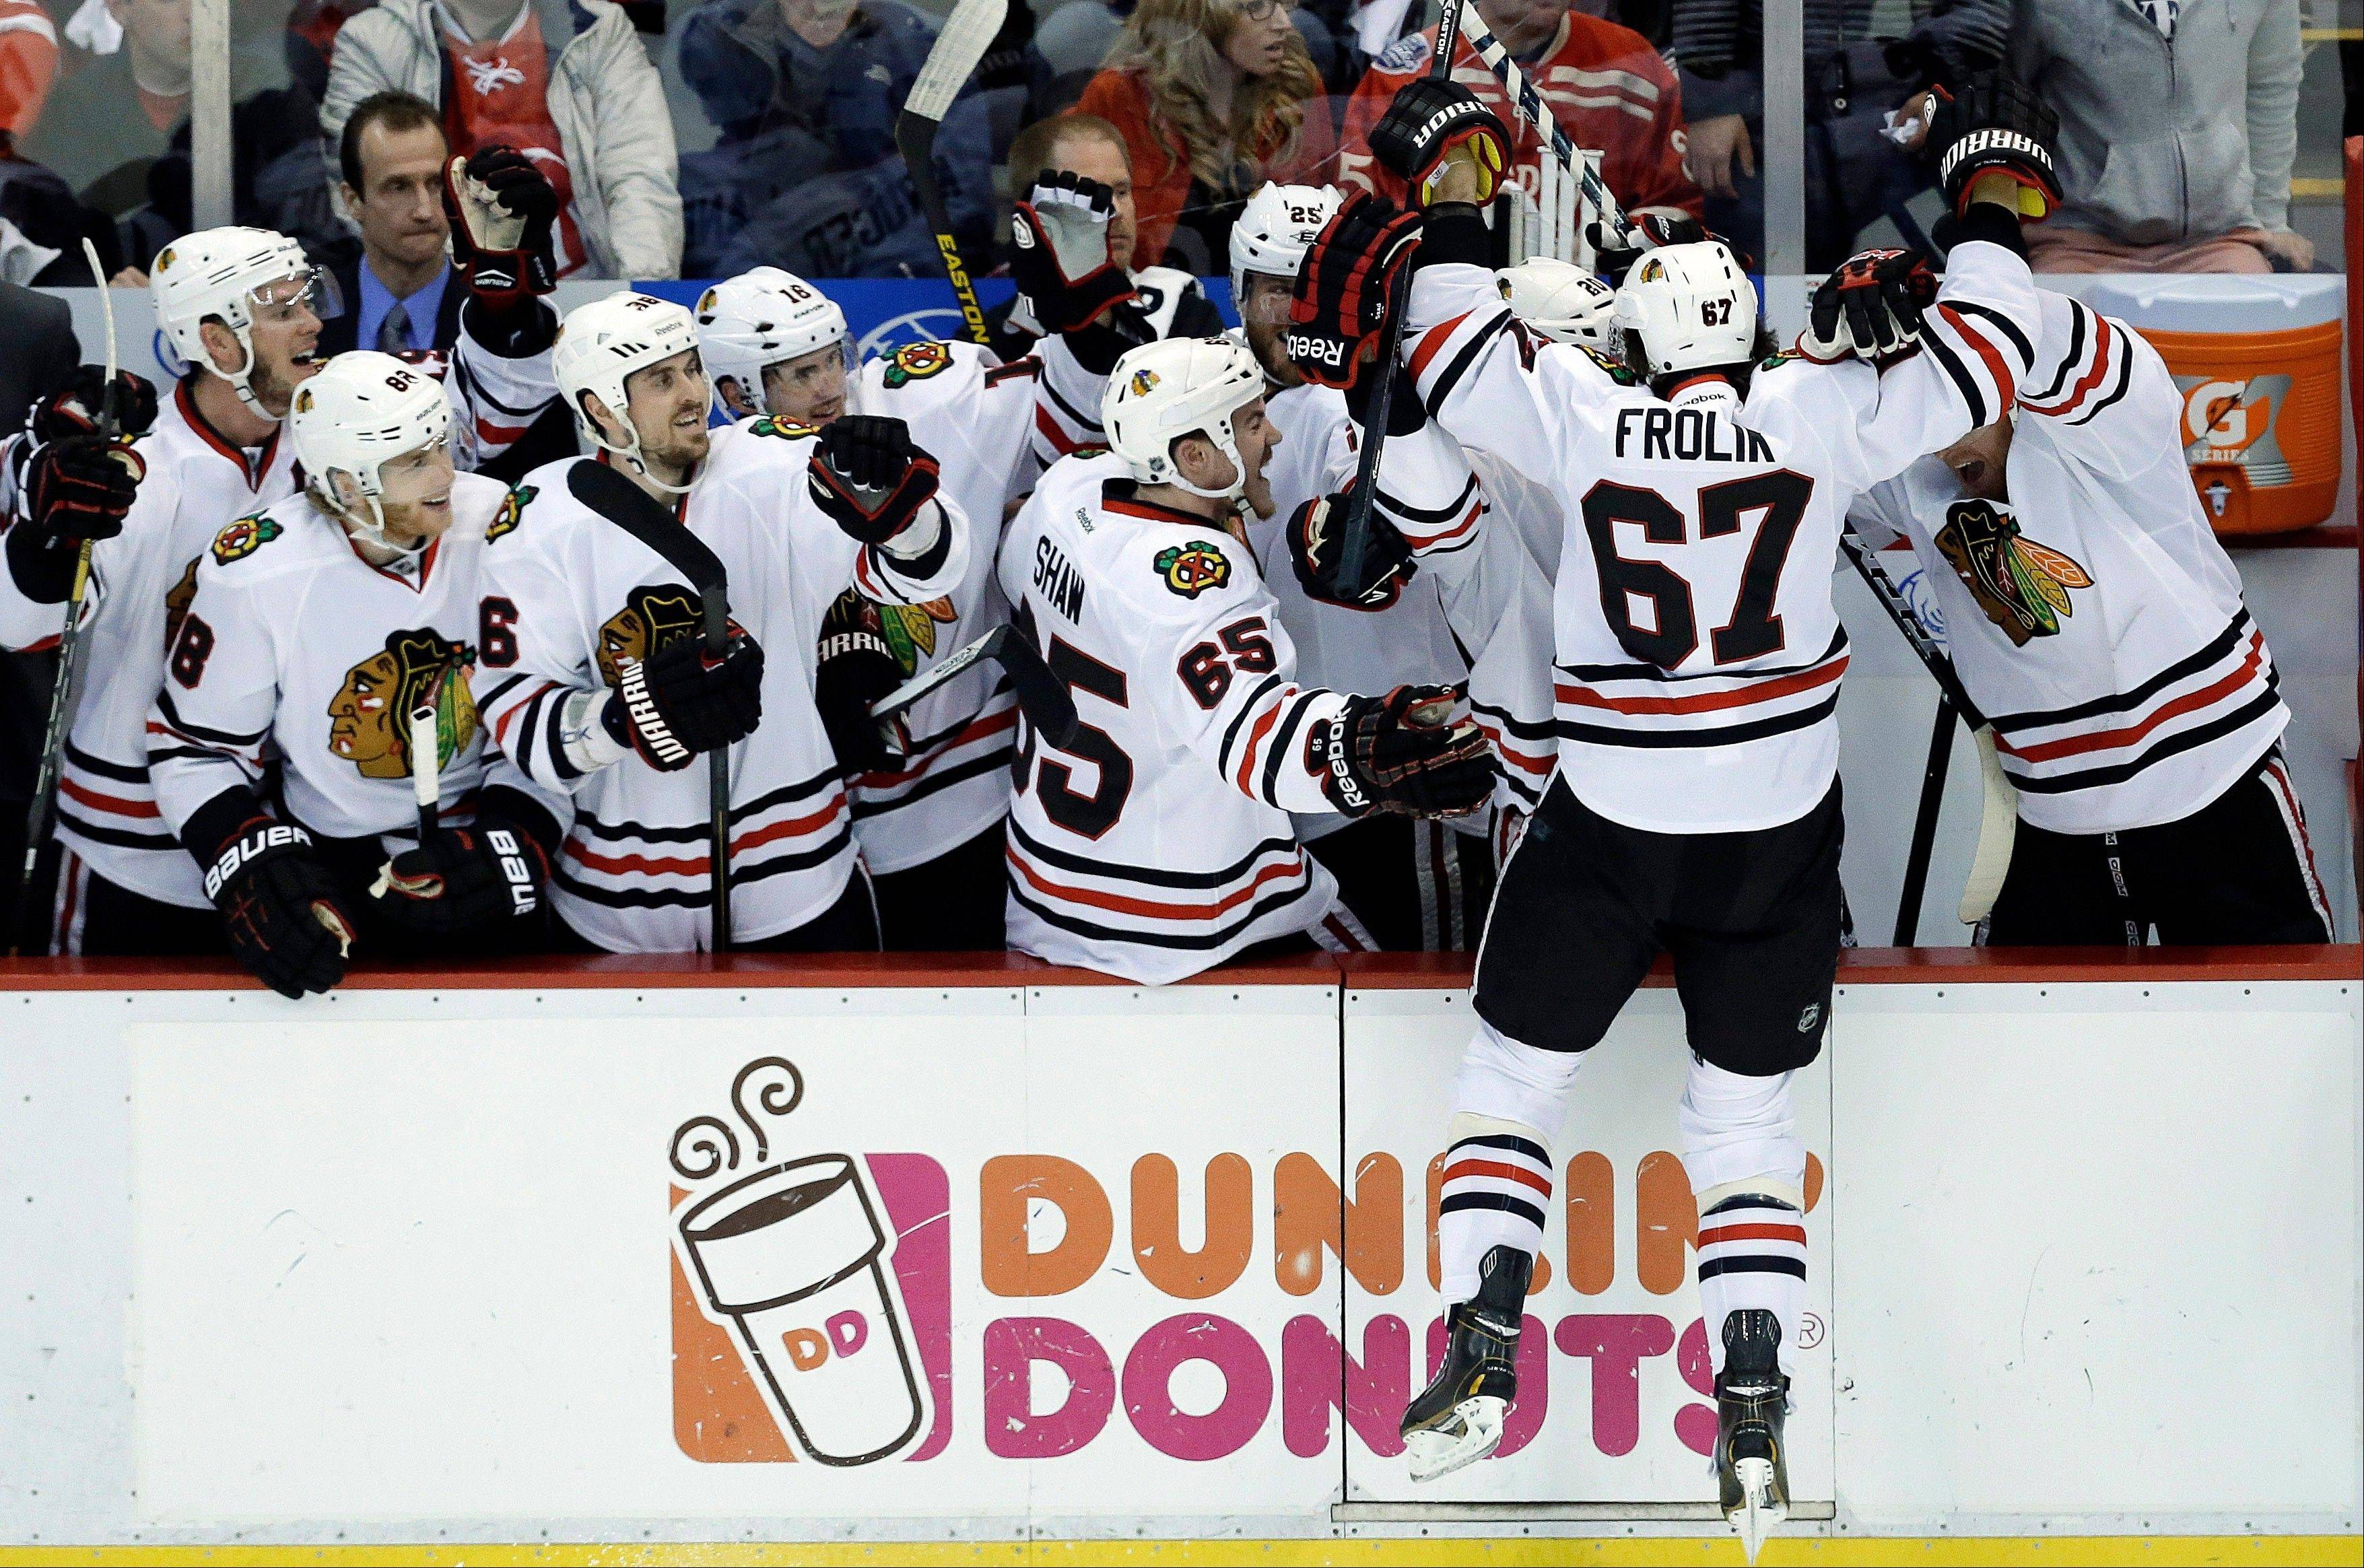 Blackhawks rally in third period to force Game 7